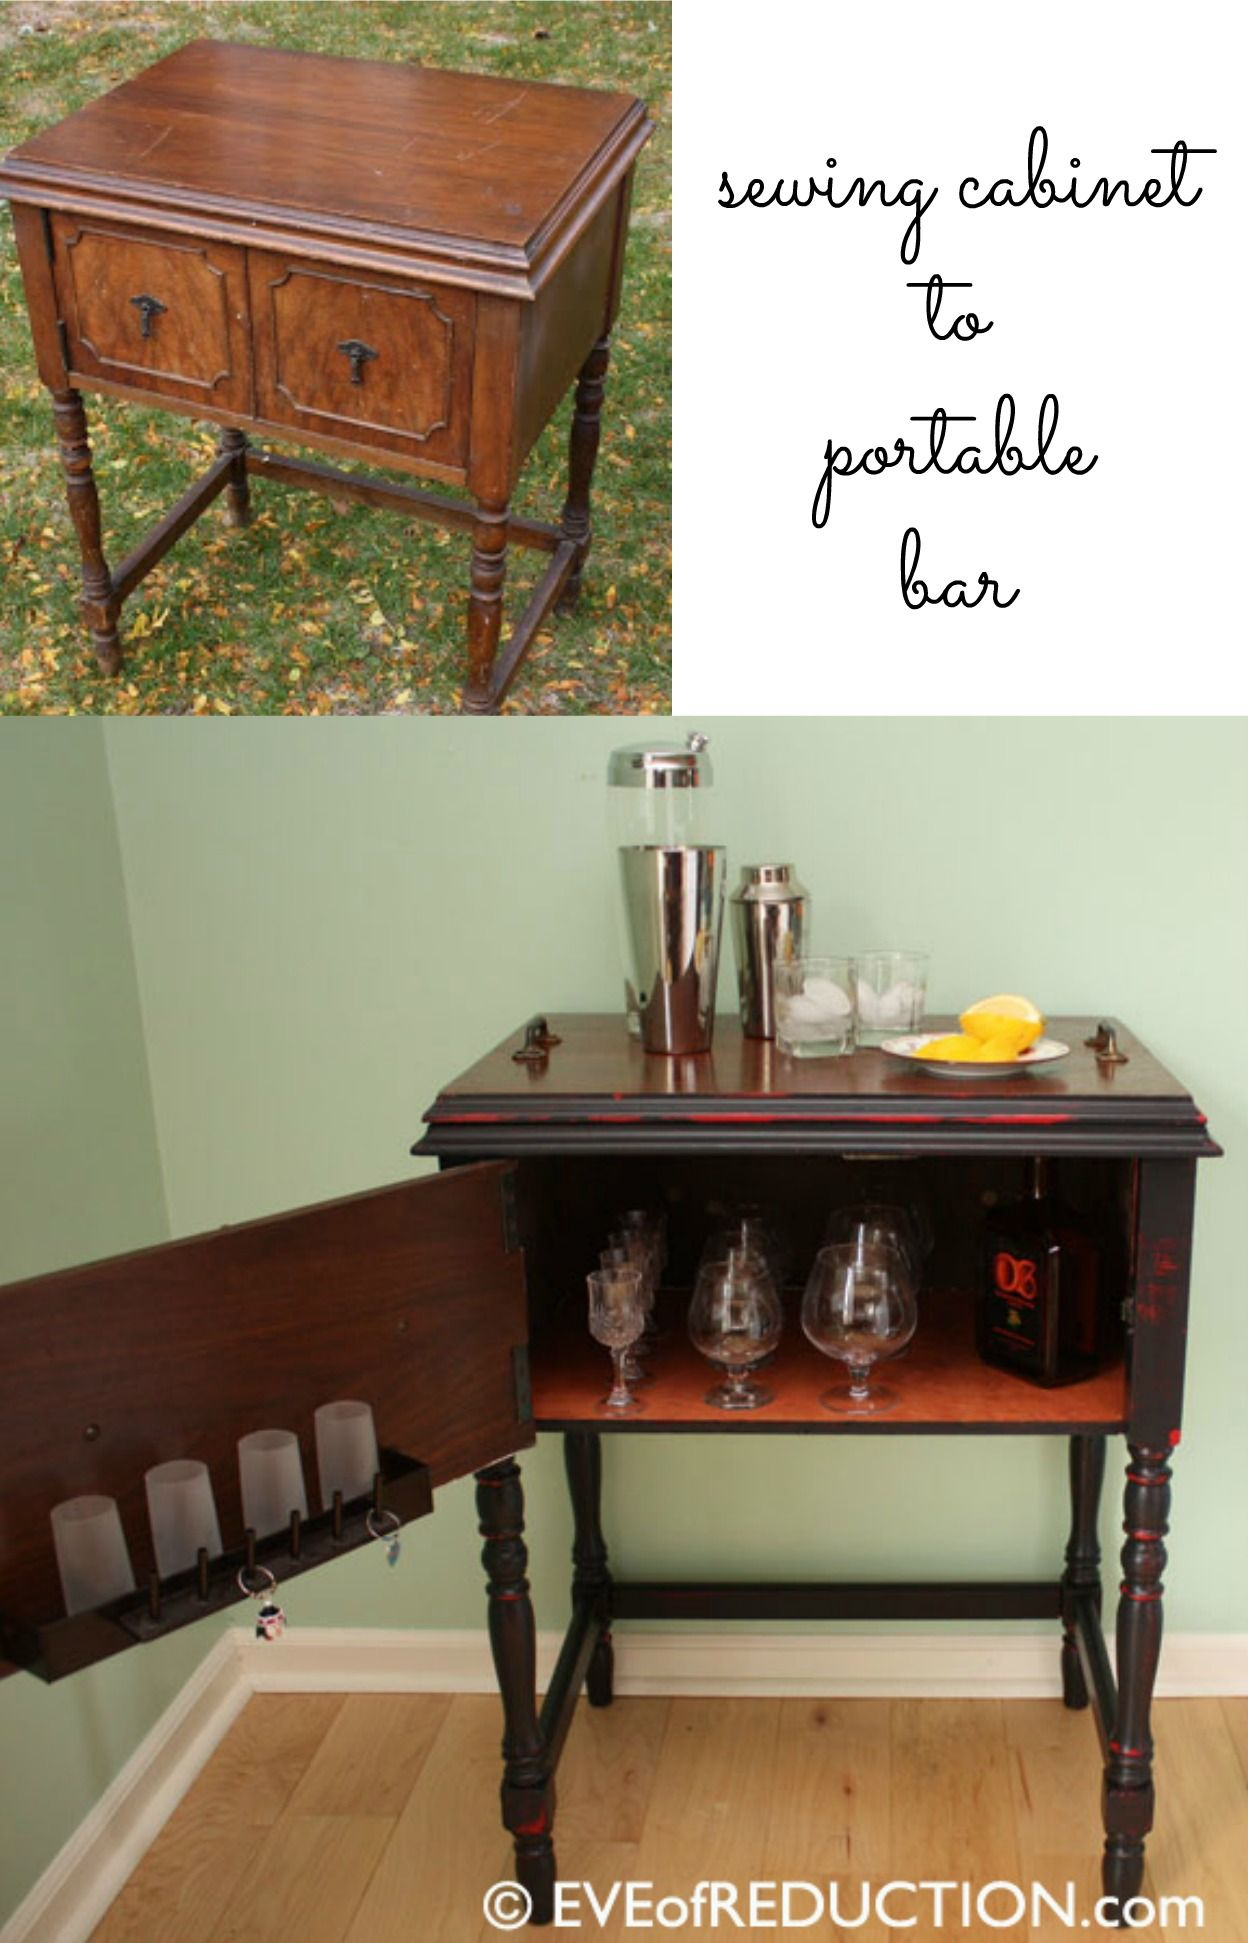 How to make a sewing cabinet bar. Old sewing machine cabinets make great new useful pieces including bar carts. & sewing cabinet bar | Transformation | Pinterest | Sewing cabinet ...